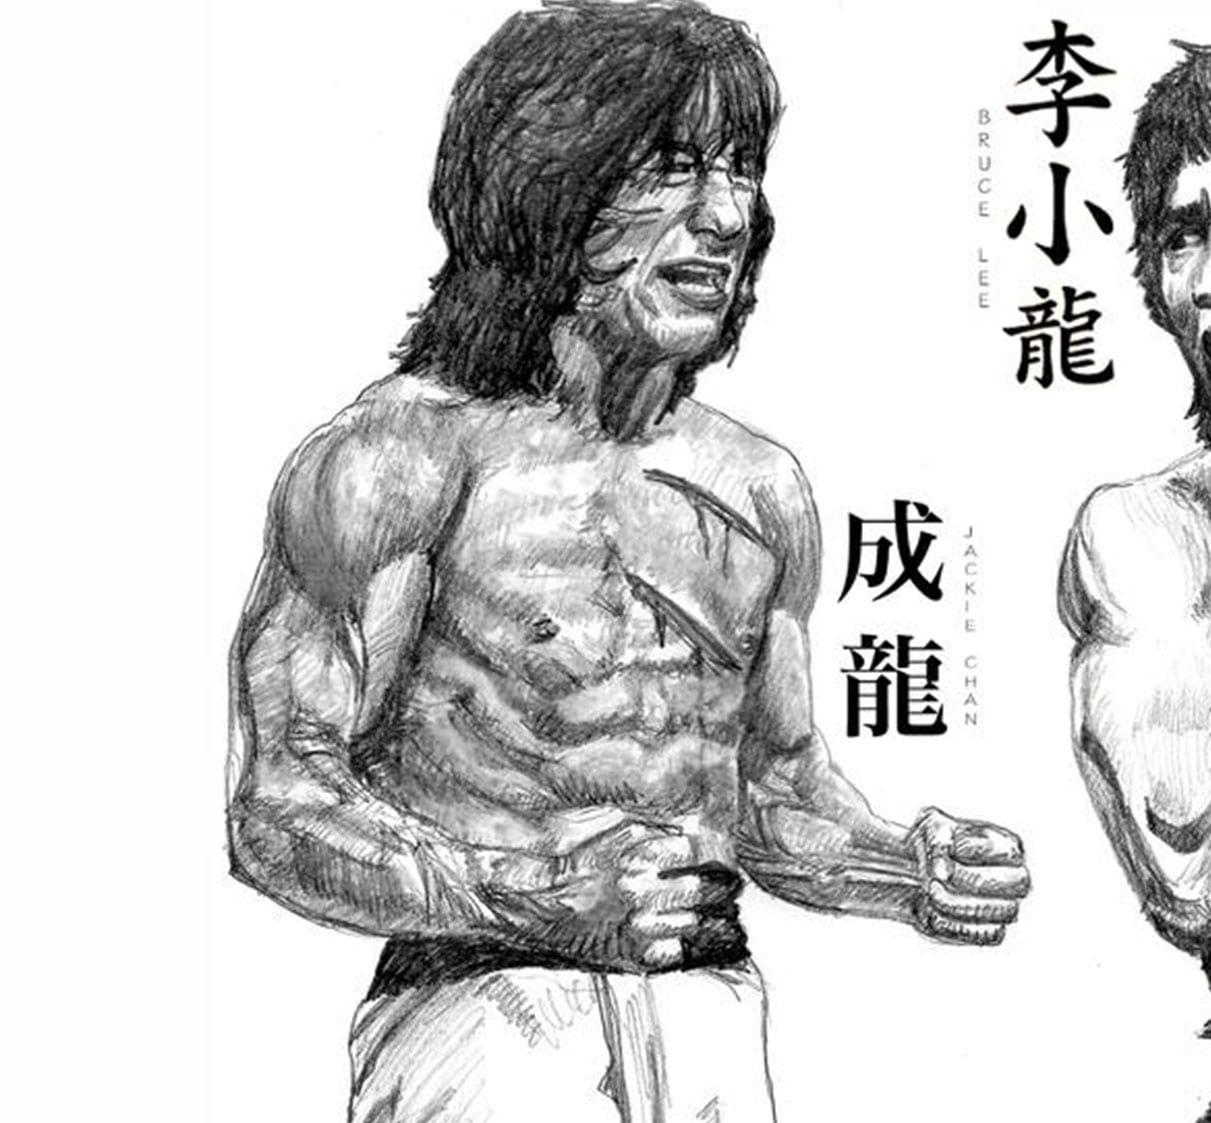 This amazing sketch of Jackie Chan